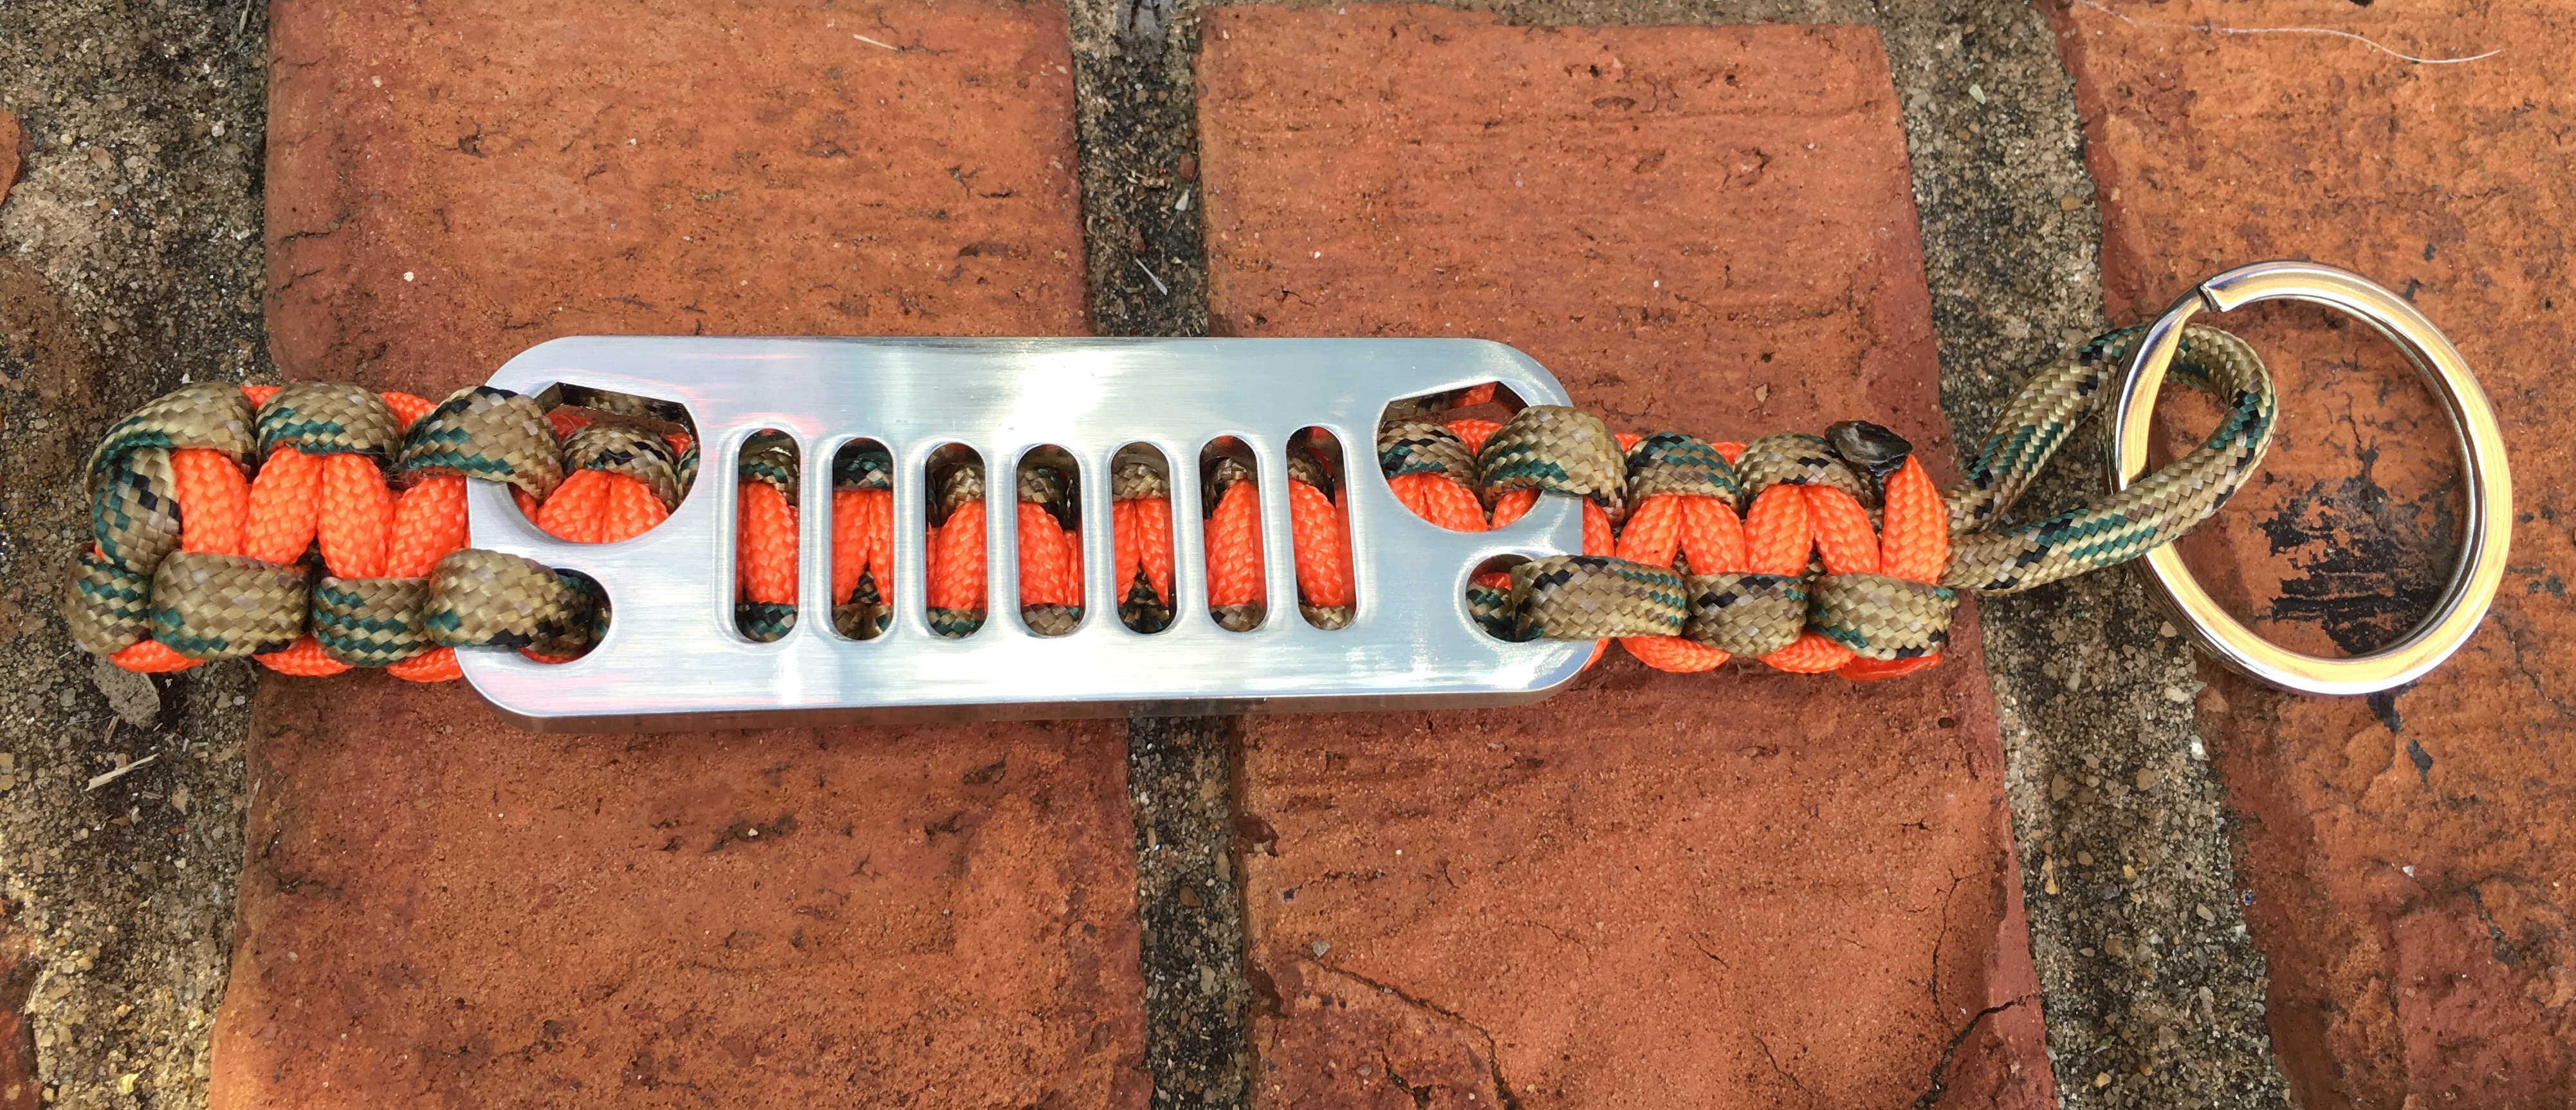 Jeep Grille Paracord Keychain in Camo and Orange